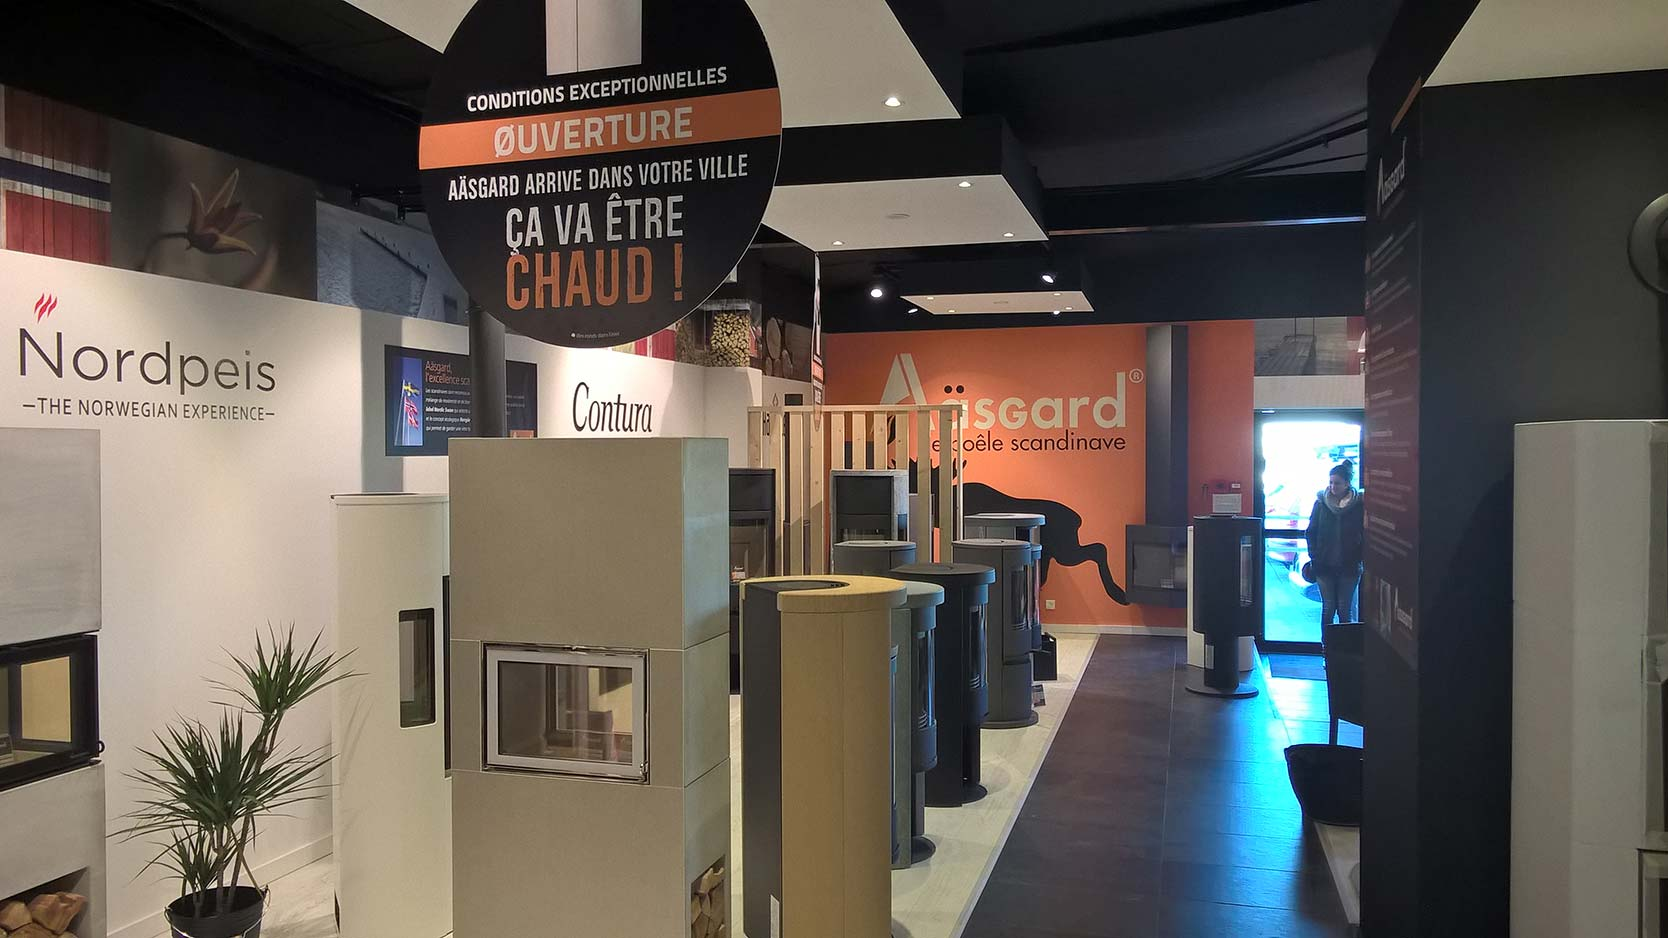 Courant faible Gironde, Courant faible Le Haillan, Courant fort Gironde, Courant fort Le Haillan, Eclairage Gironde, Eclairage Le Haillan, Électricien Gironde, Électricien Le Haillan, Electricité Gironde, Electricité Le Haillan